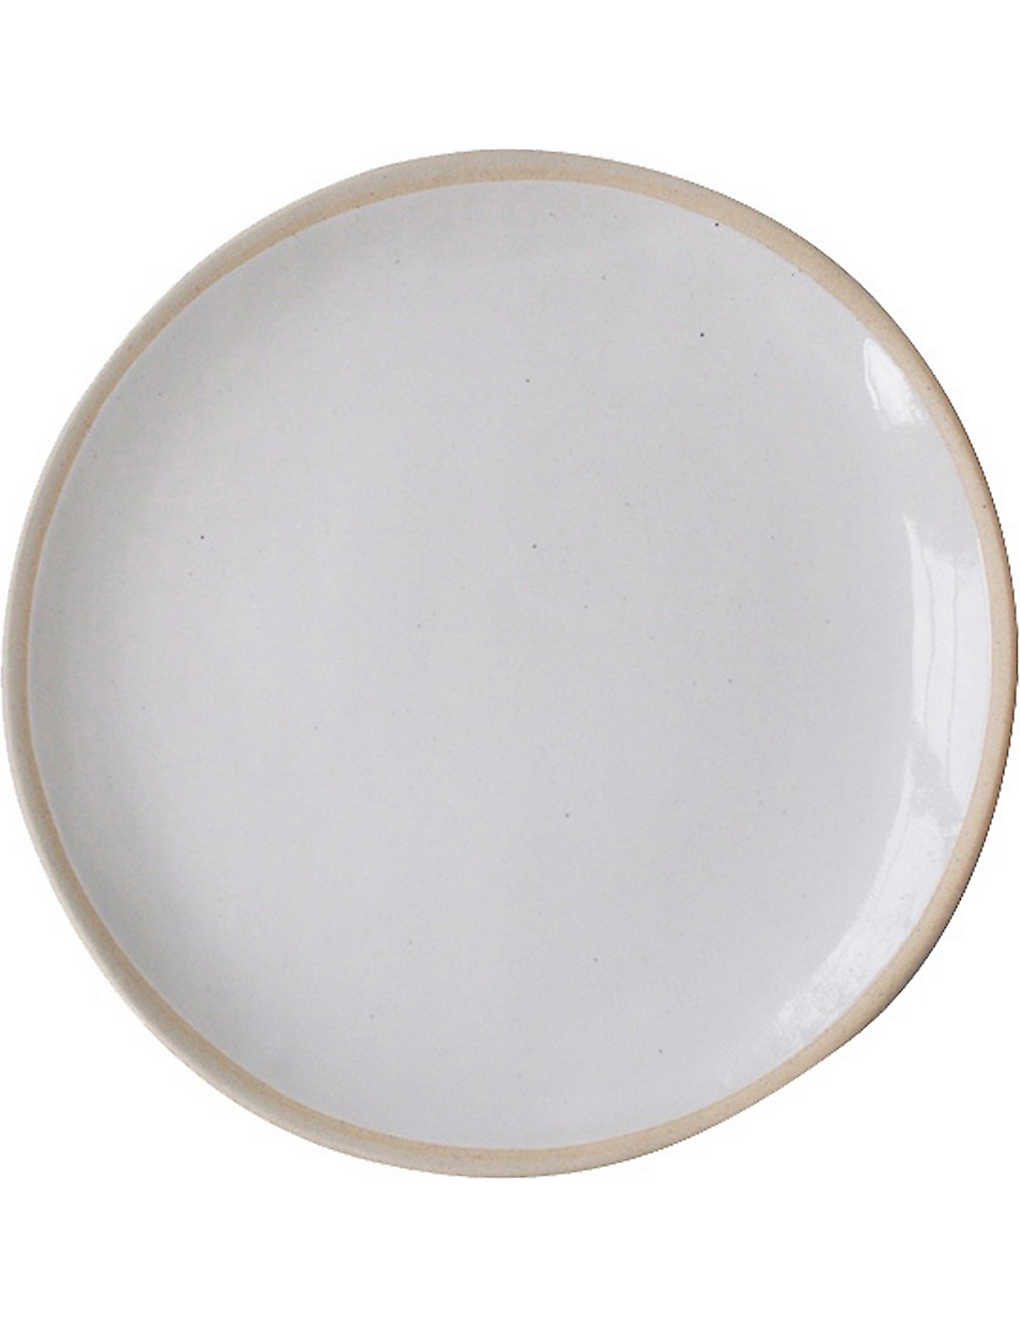 THE CONRAN SHOP: Wonki Ware organic sand cake server plate 36cm